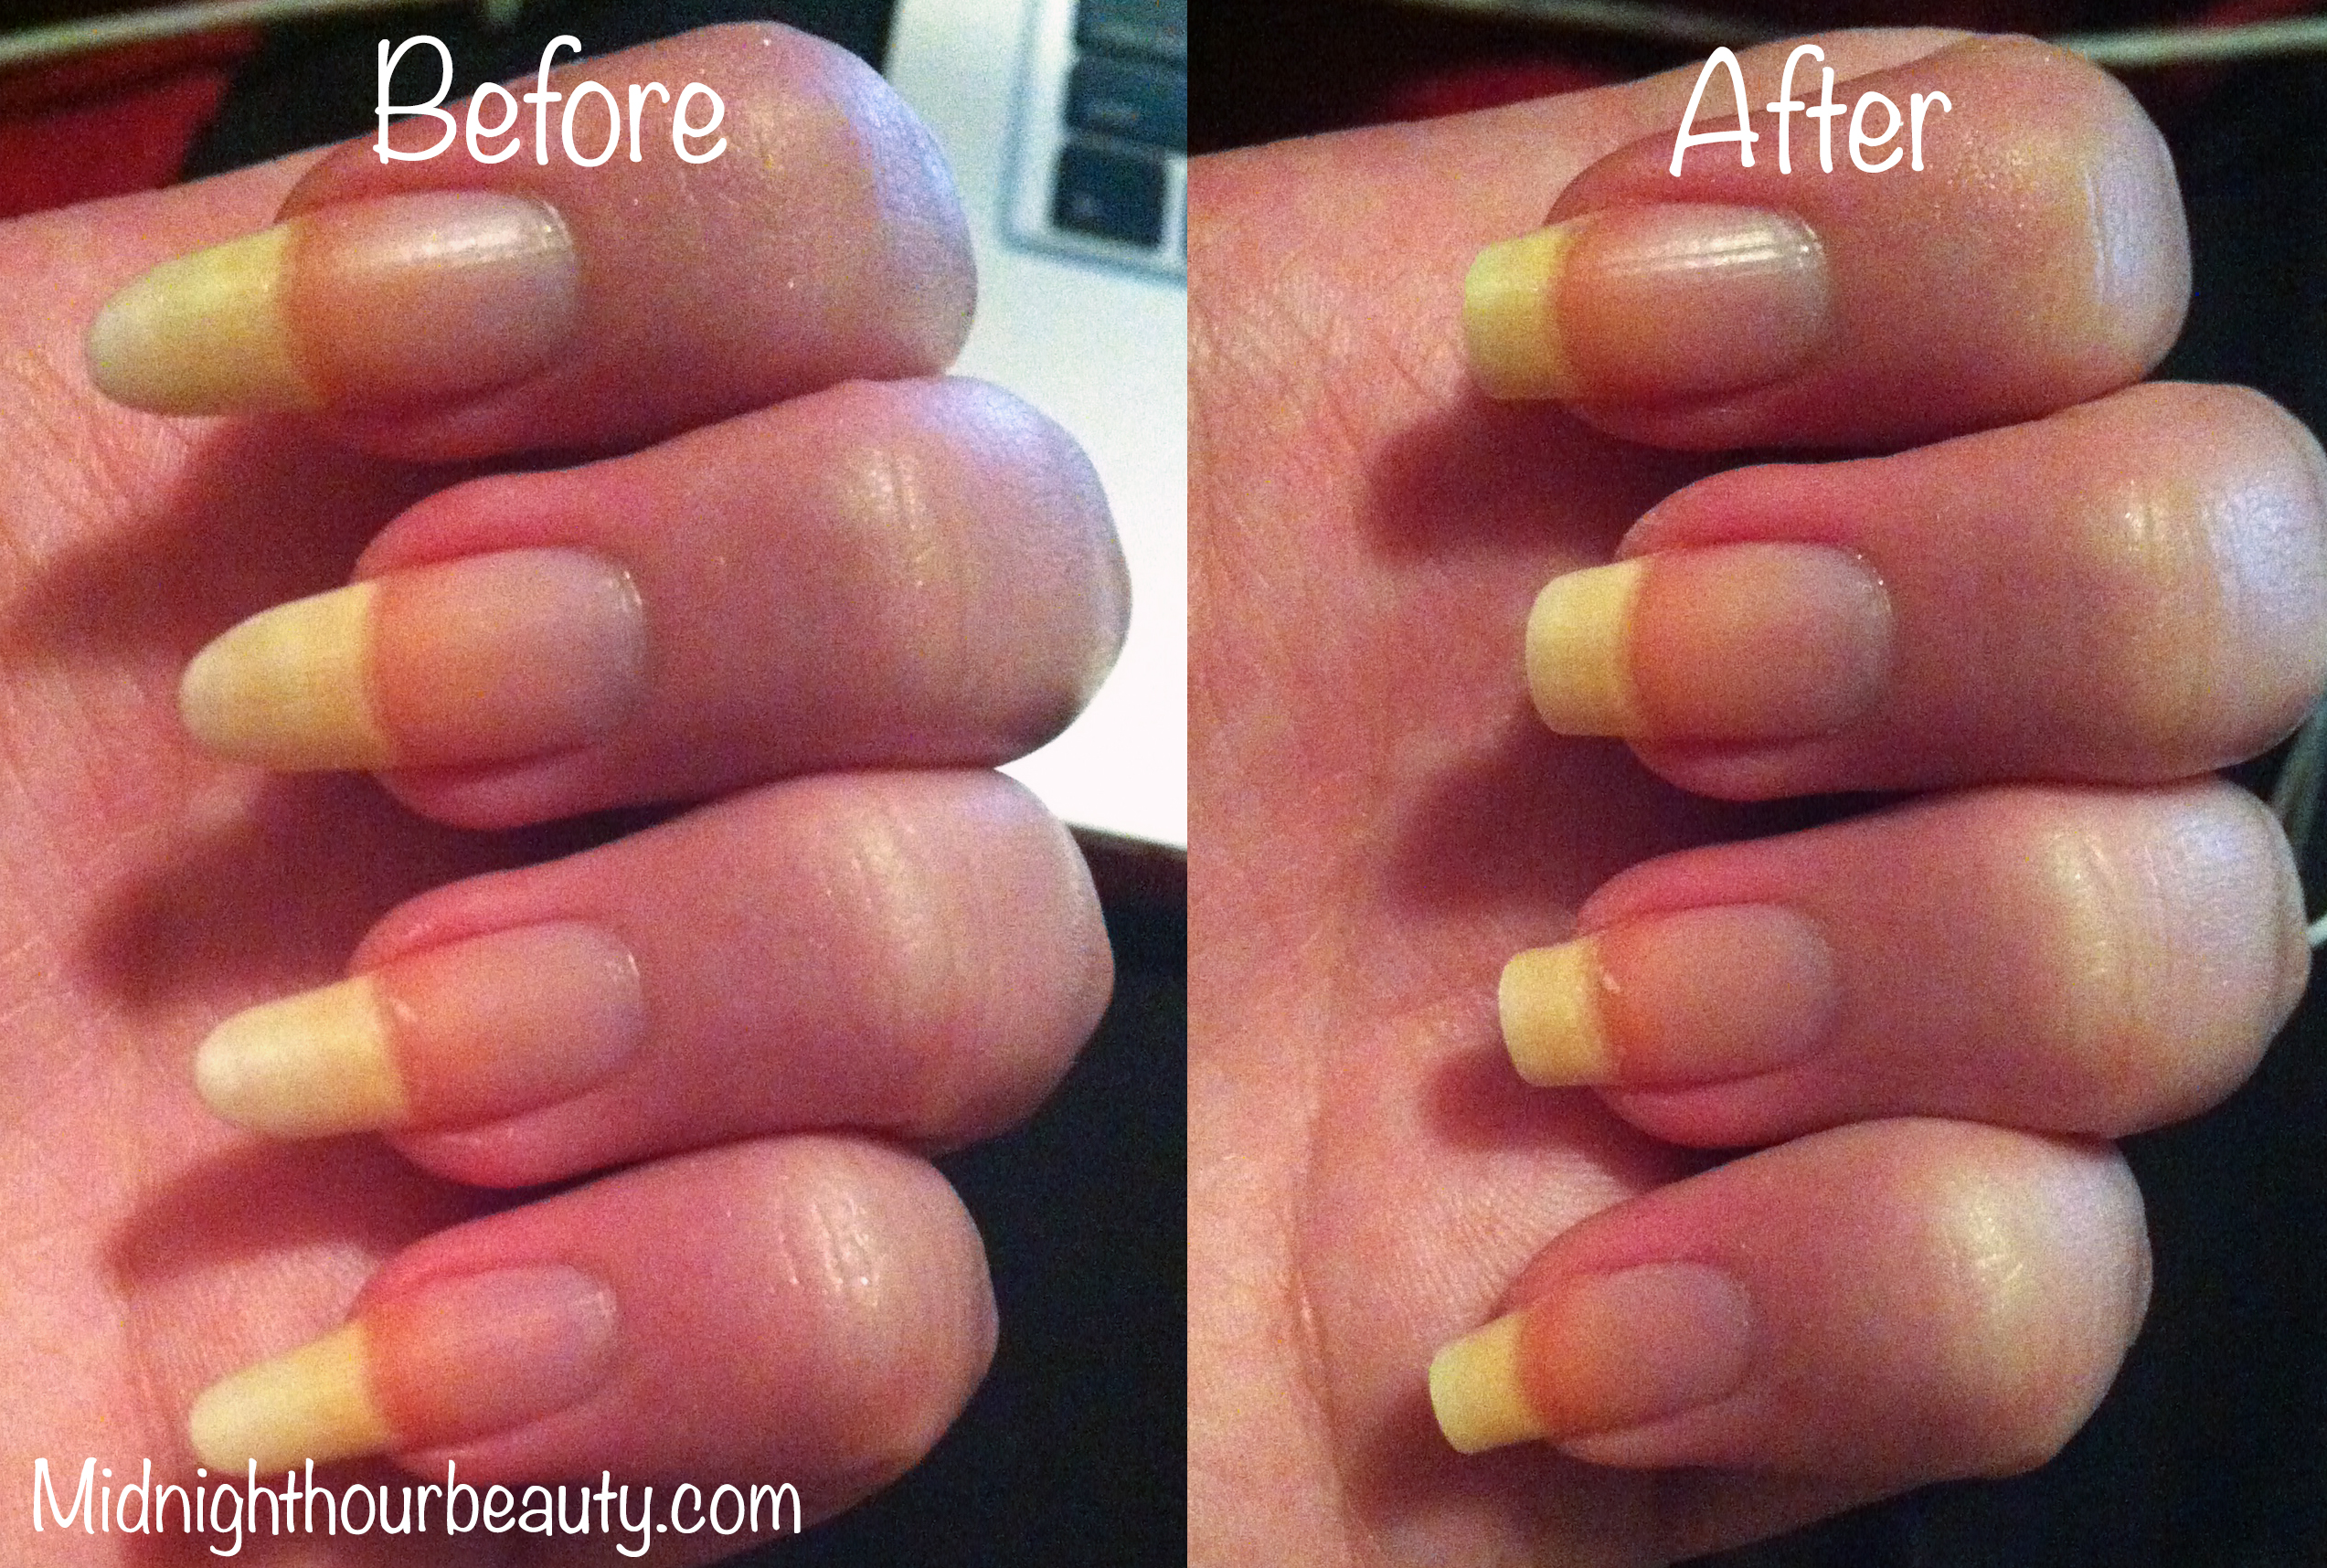 Reshaping and Striped Nail Art | Midnight Hour Beauty